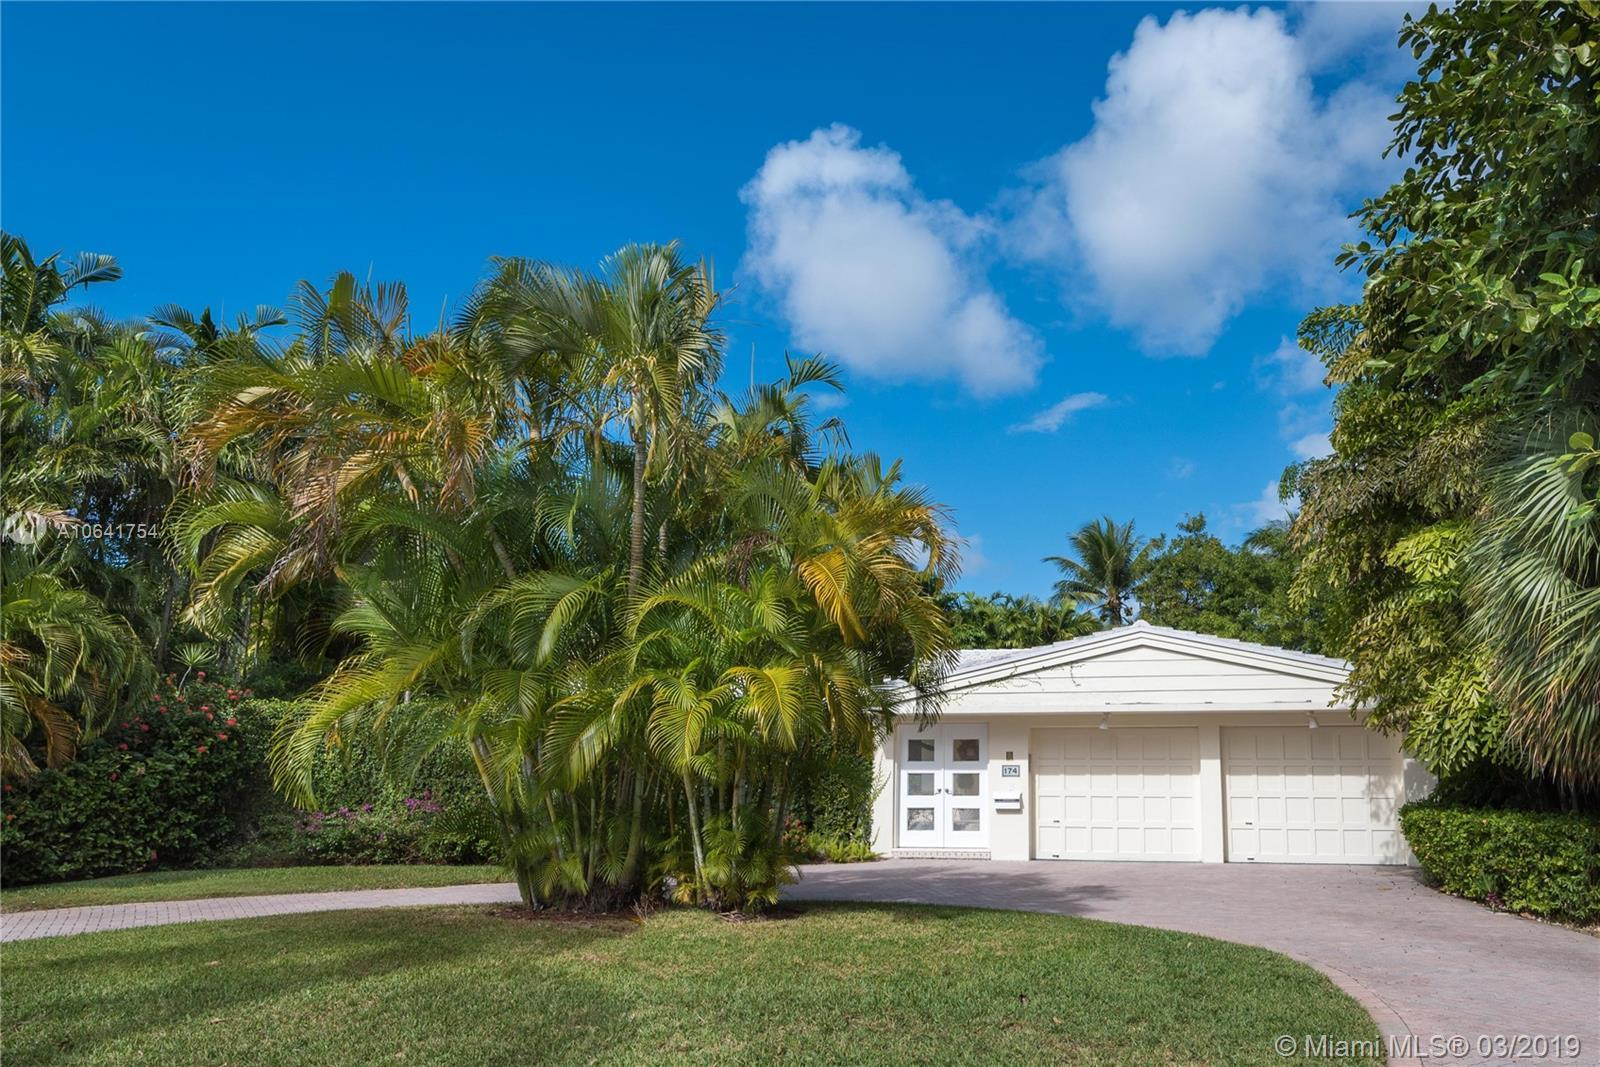 EXCLUSIVE GATED COMMUNITY OF BAL HARBOUR VILLAGE. BEAUTIFUL HOME, GREAT CONDITION, READY FOR OCCUPAN